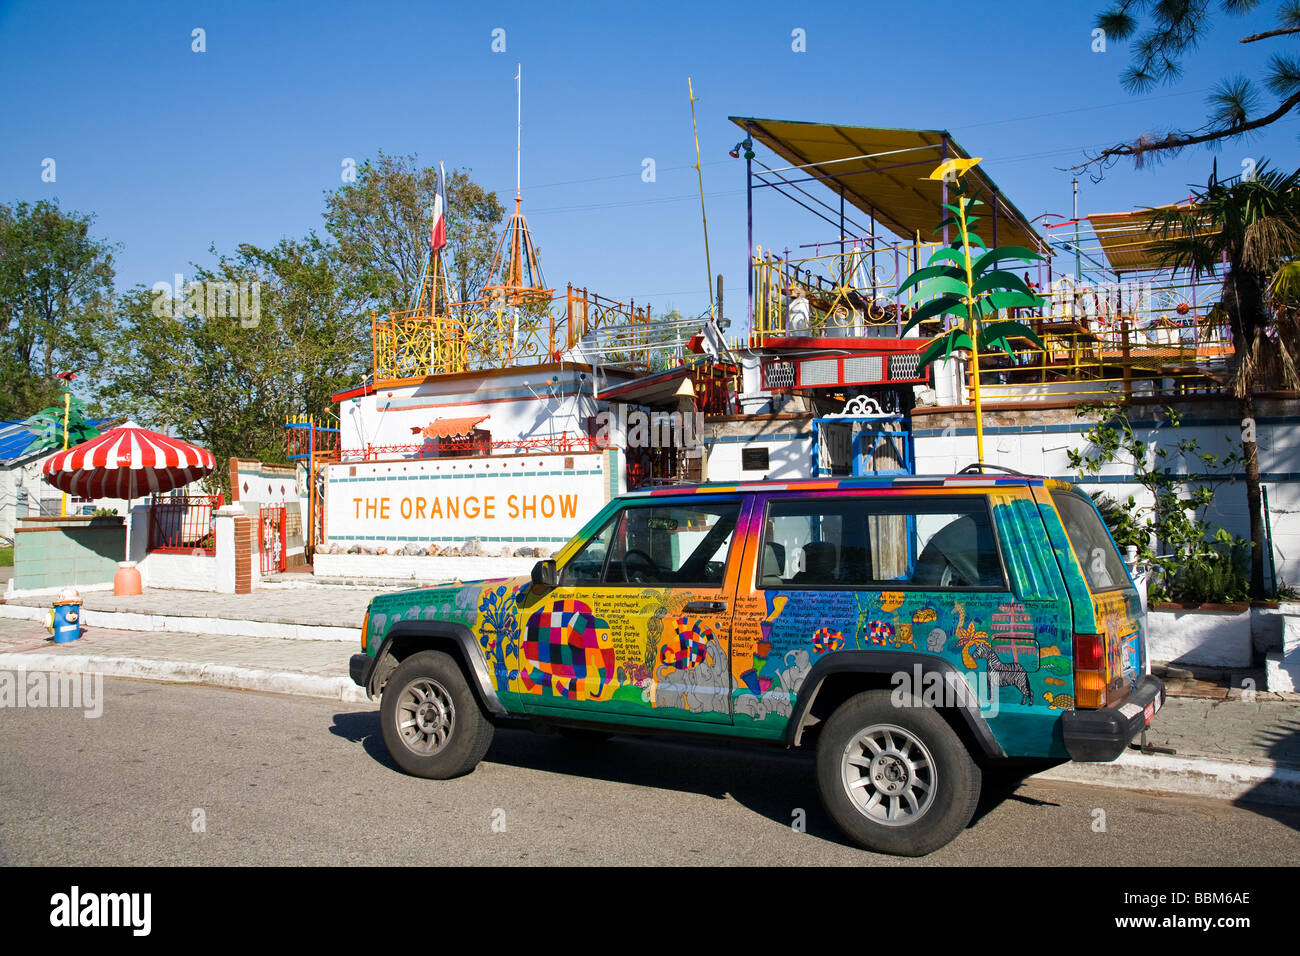 An art car sits outside The Orange Show's weird and unique collection of folk art in Houston, Texas. - Stock Image